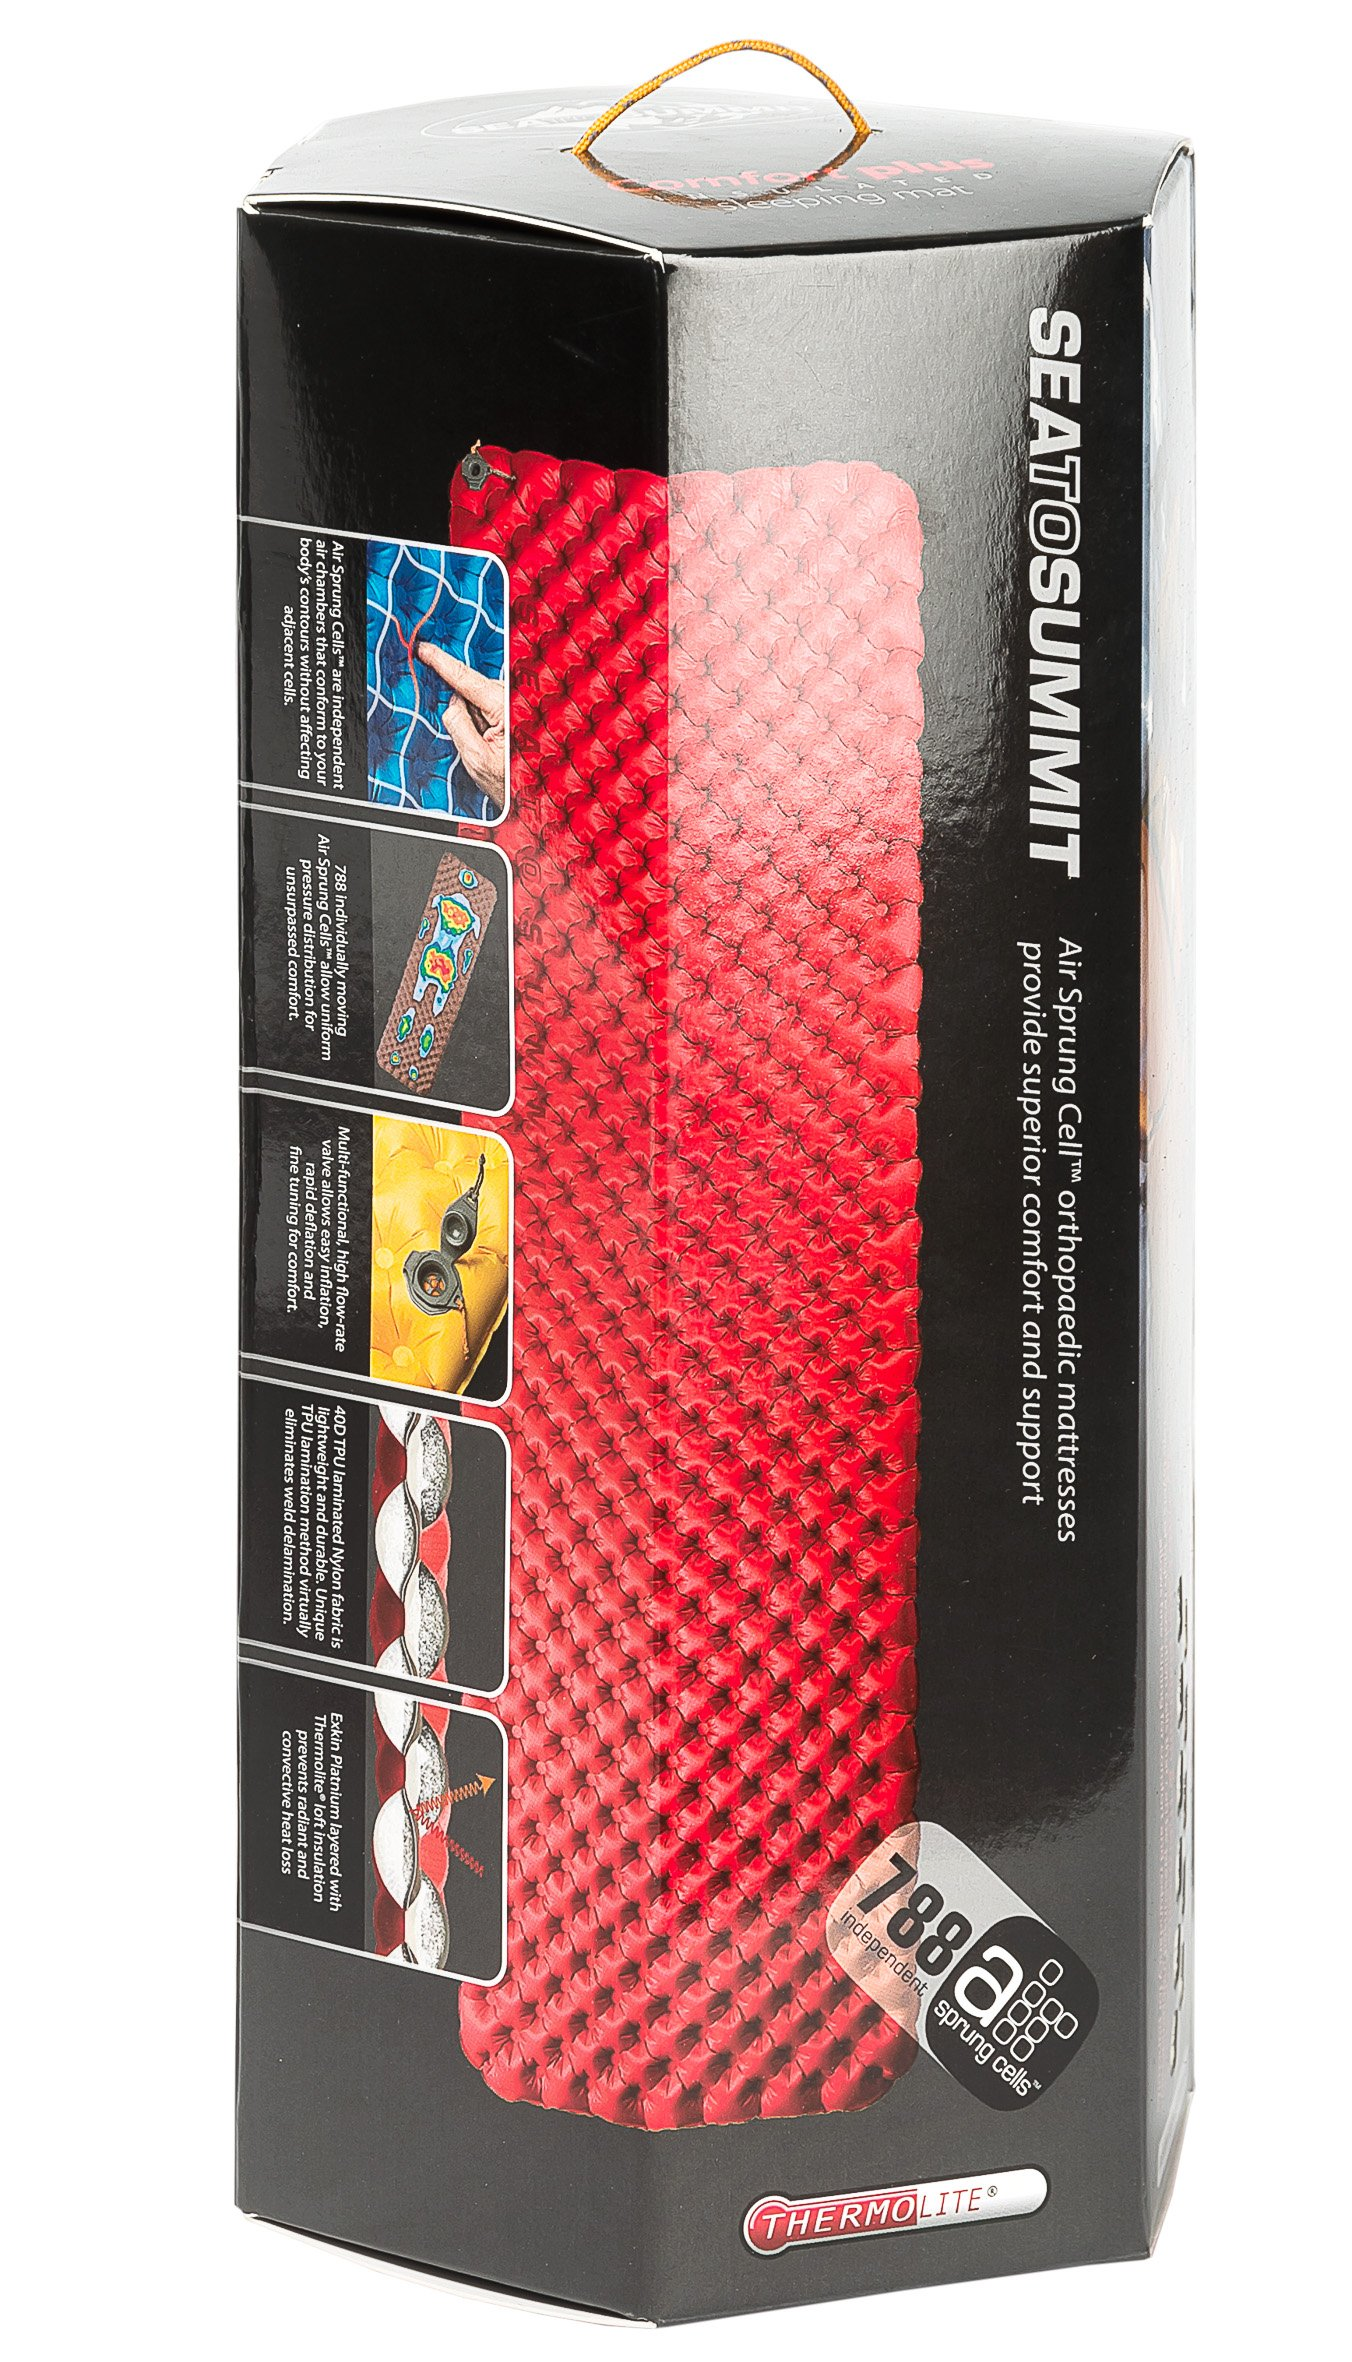 Sea to Summit Comfort Plus Insulated Sleeping Mat (Large Rectangular / Red) by Sea to Summit (Image #2)